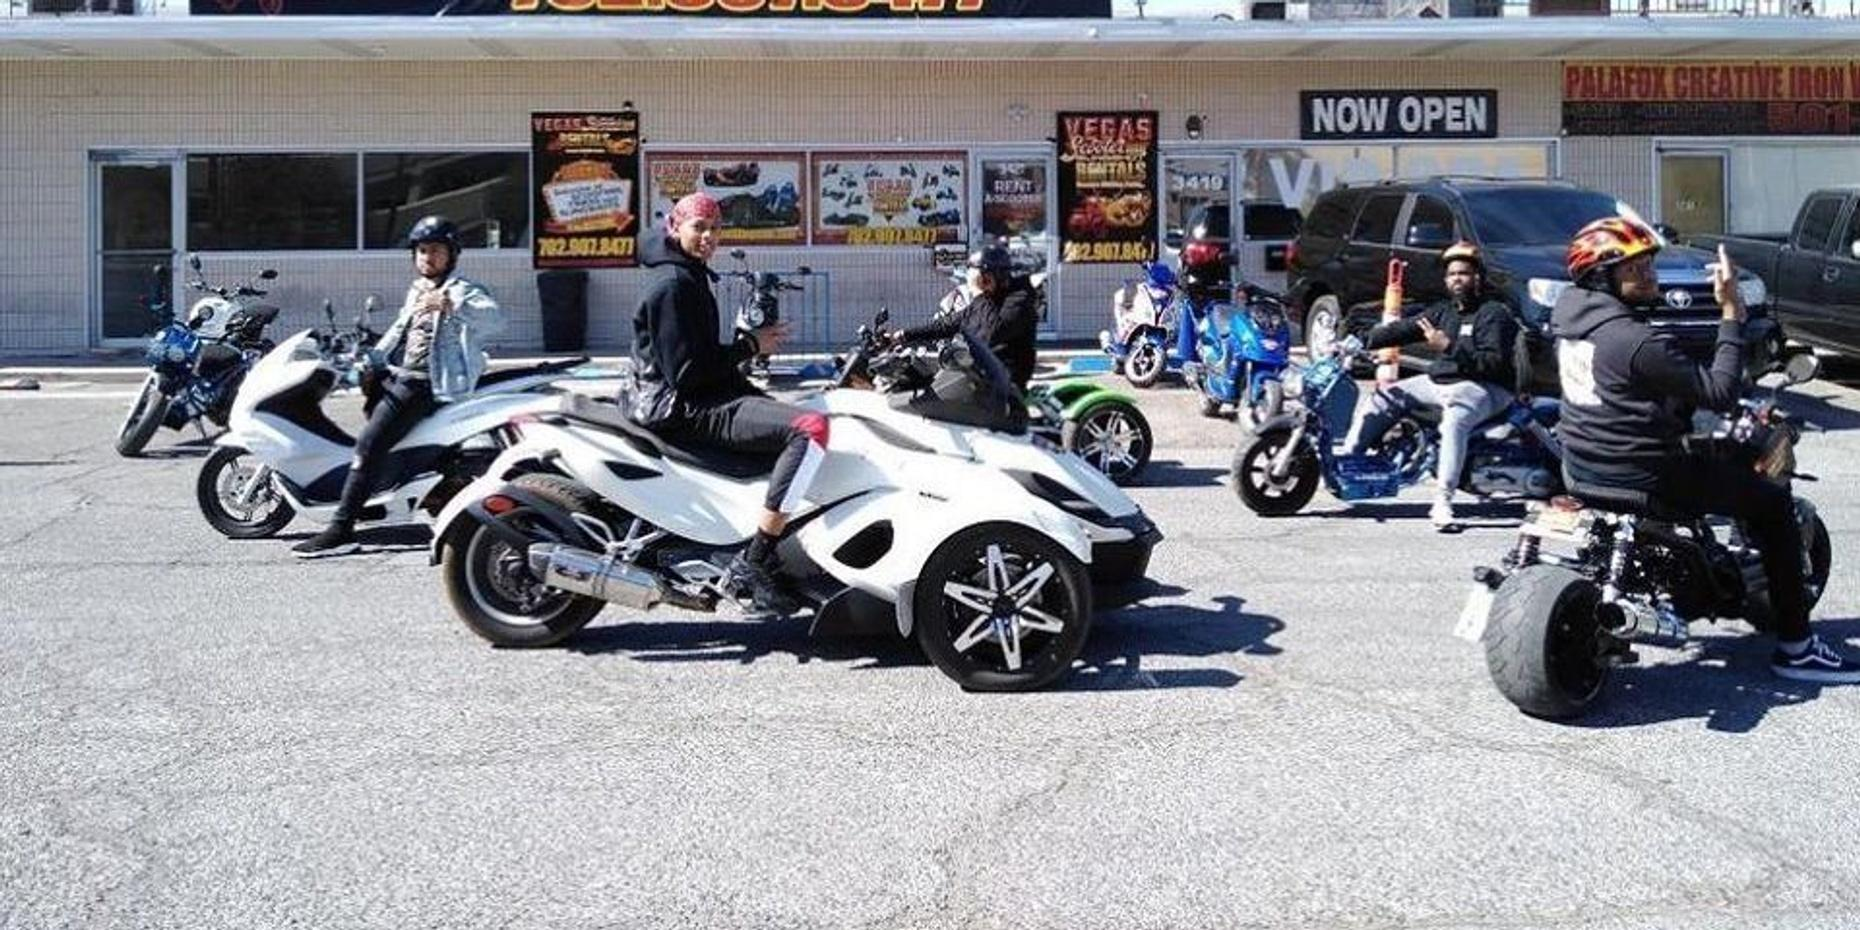 Full-day Icebear 100cc Trike Rental in Las Vegas